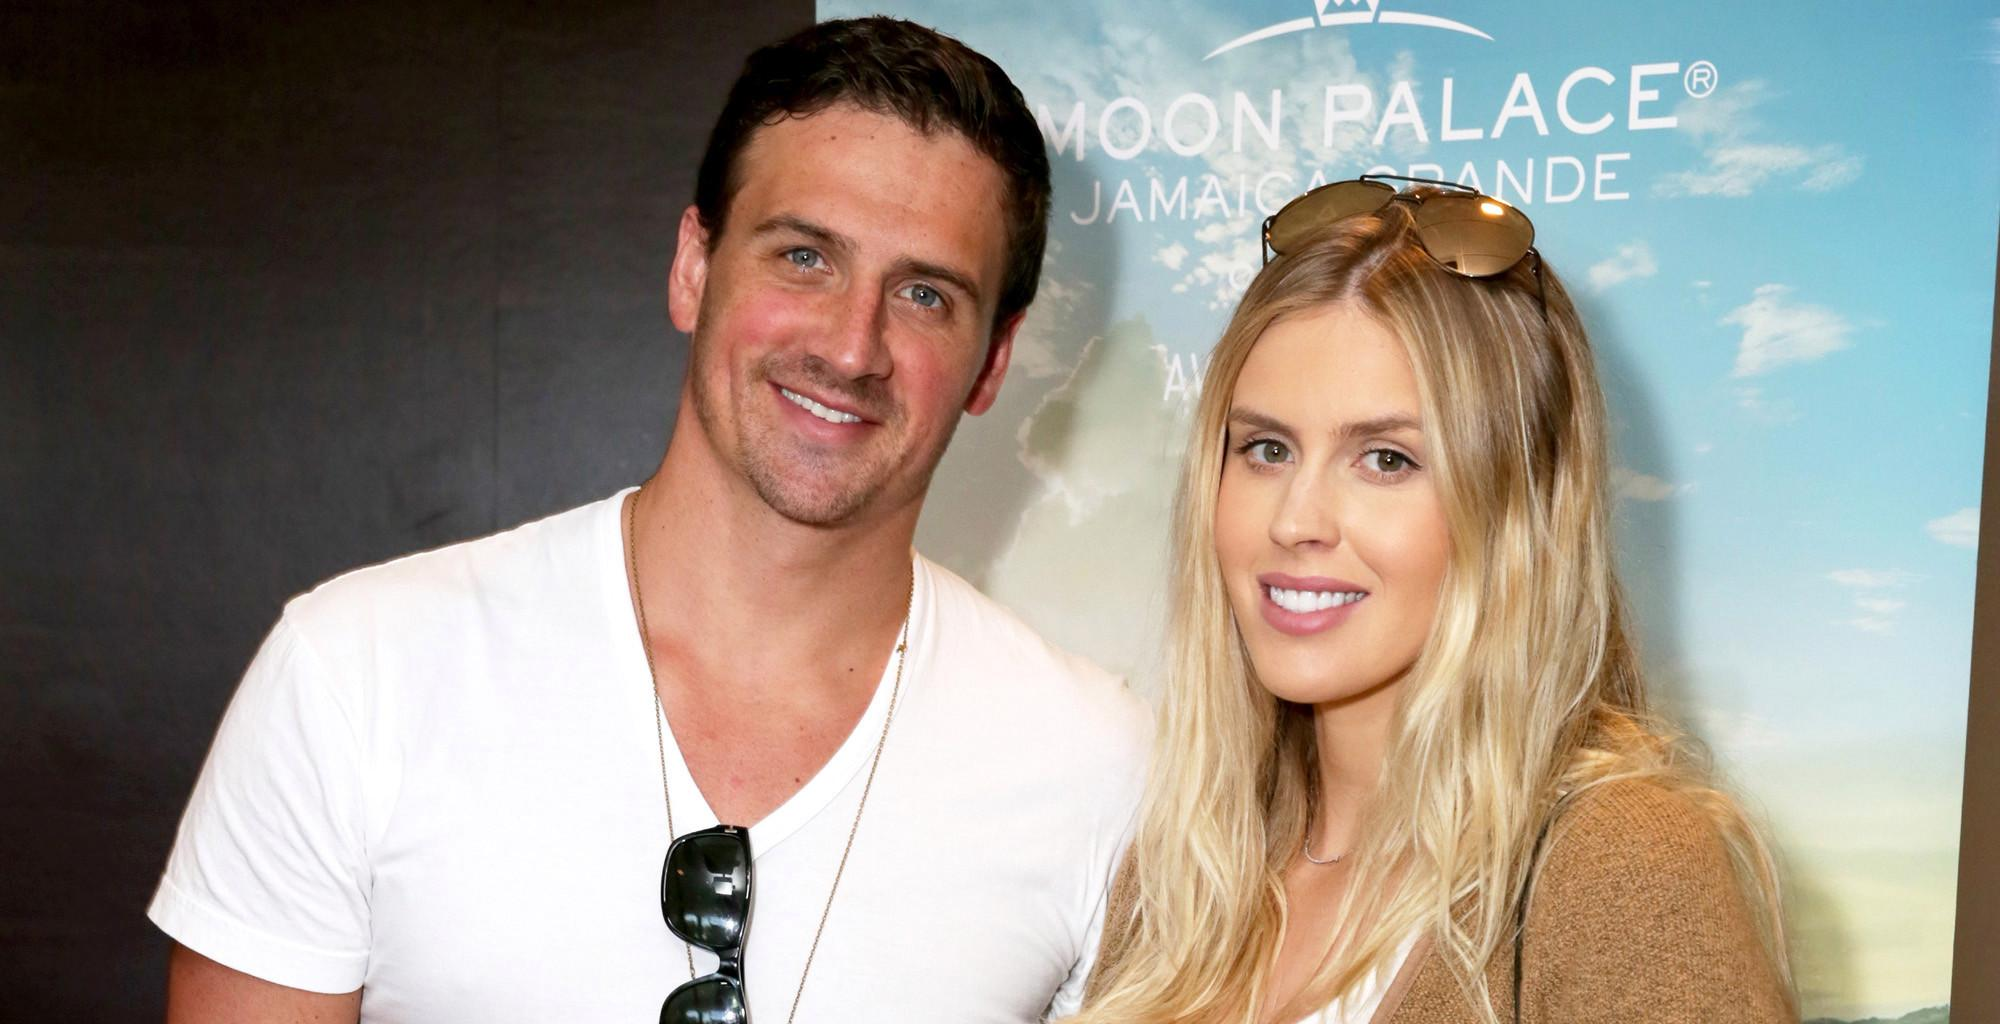 Ryan Lochte And Wife Kayla Rae Reid Share Cute Gender Reveal Video For Second Addition To The Family!